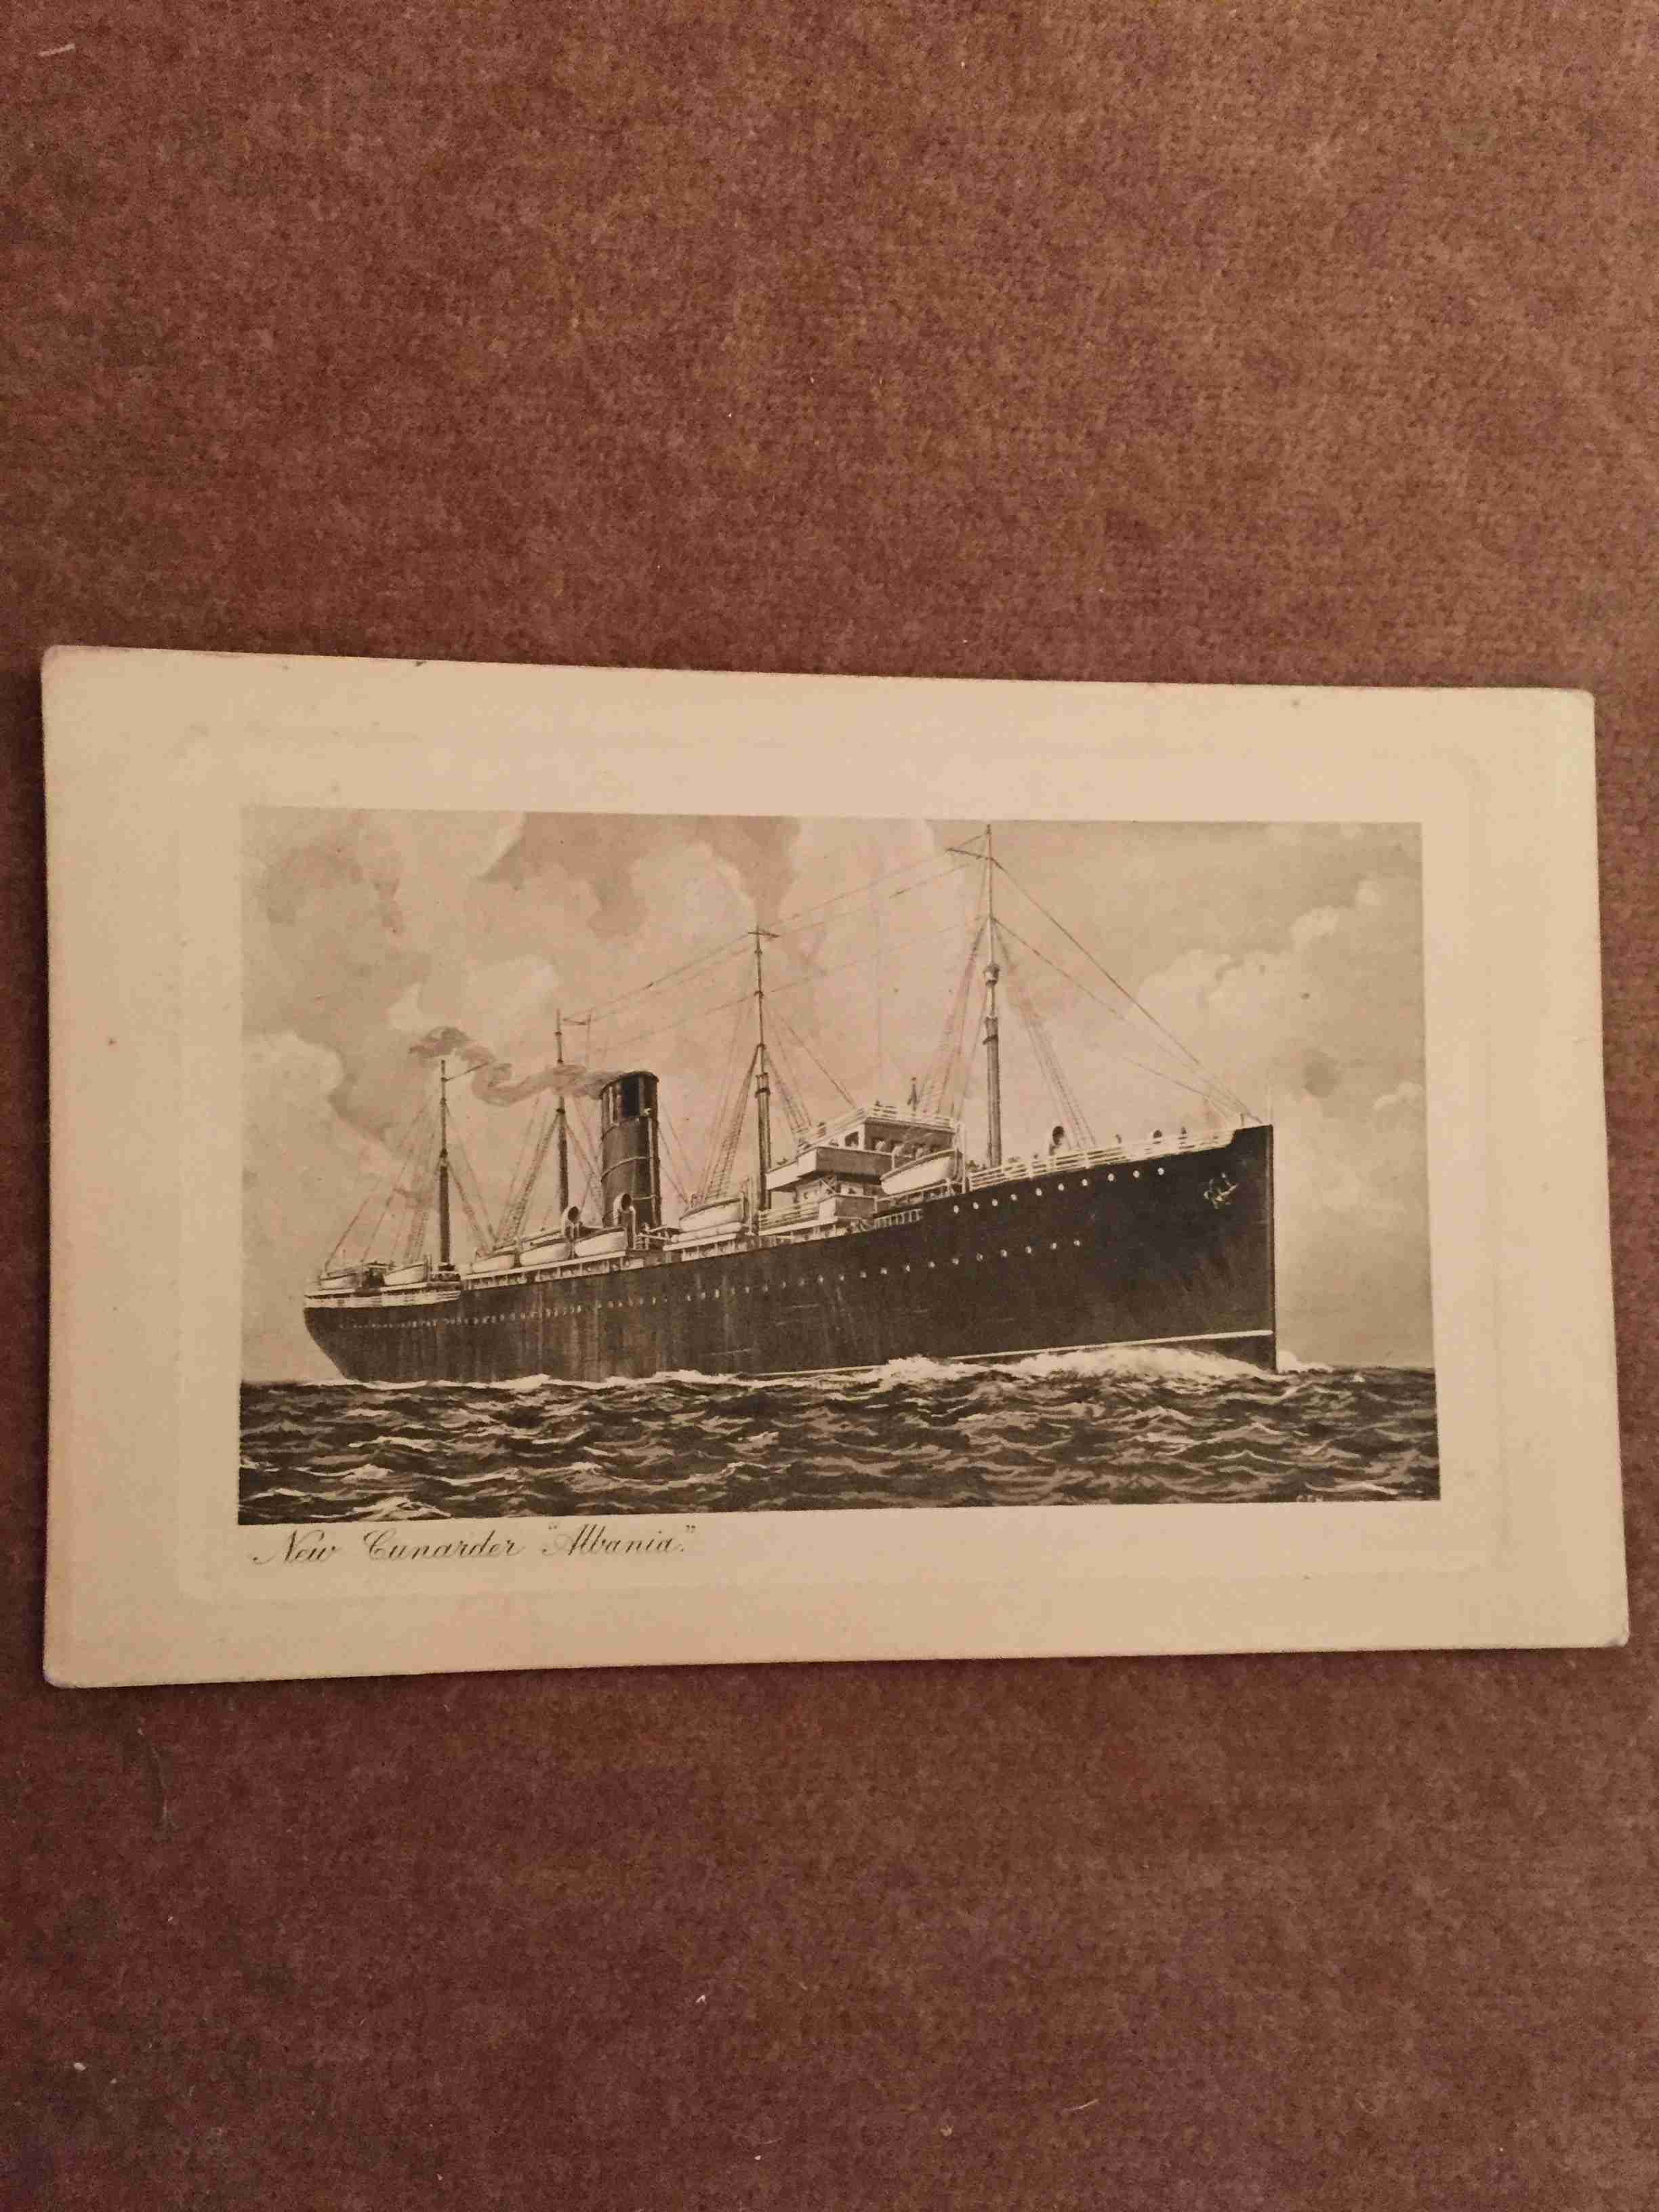 UNUSED B&W POSTCARD FROM THE OLD CUNARD LINE VESSEL THE ALBANIA